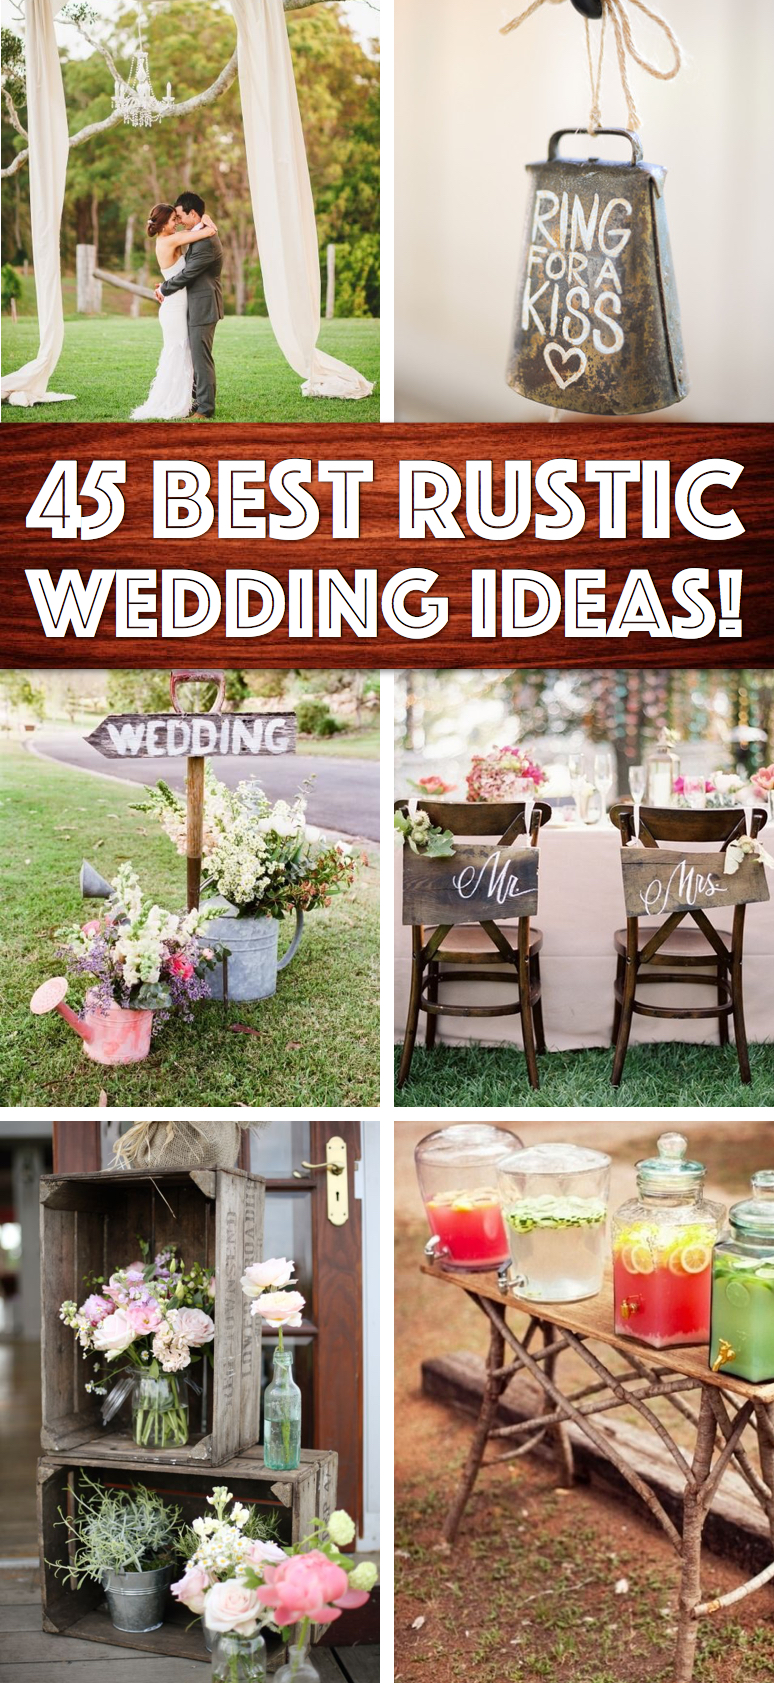 Shine On Your Wedding Day With These Breath Taking Rustic Ideas